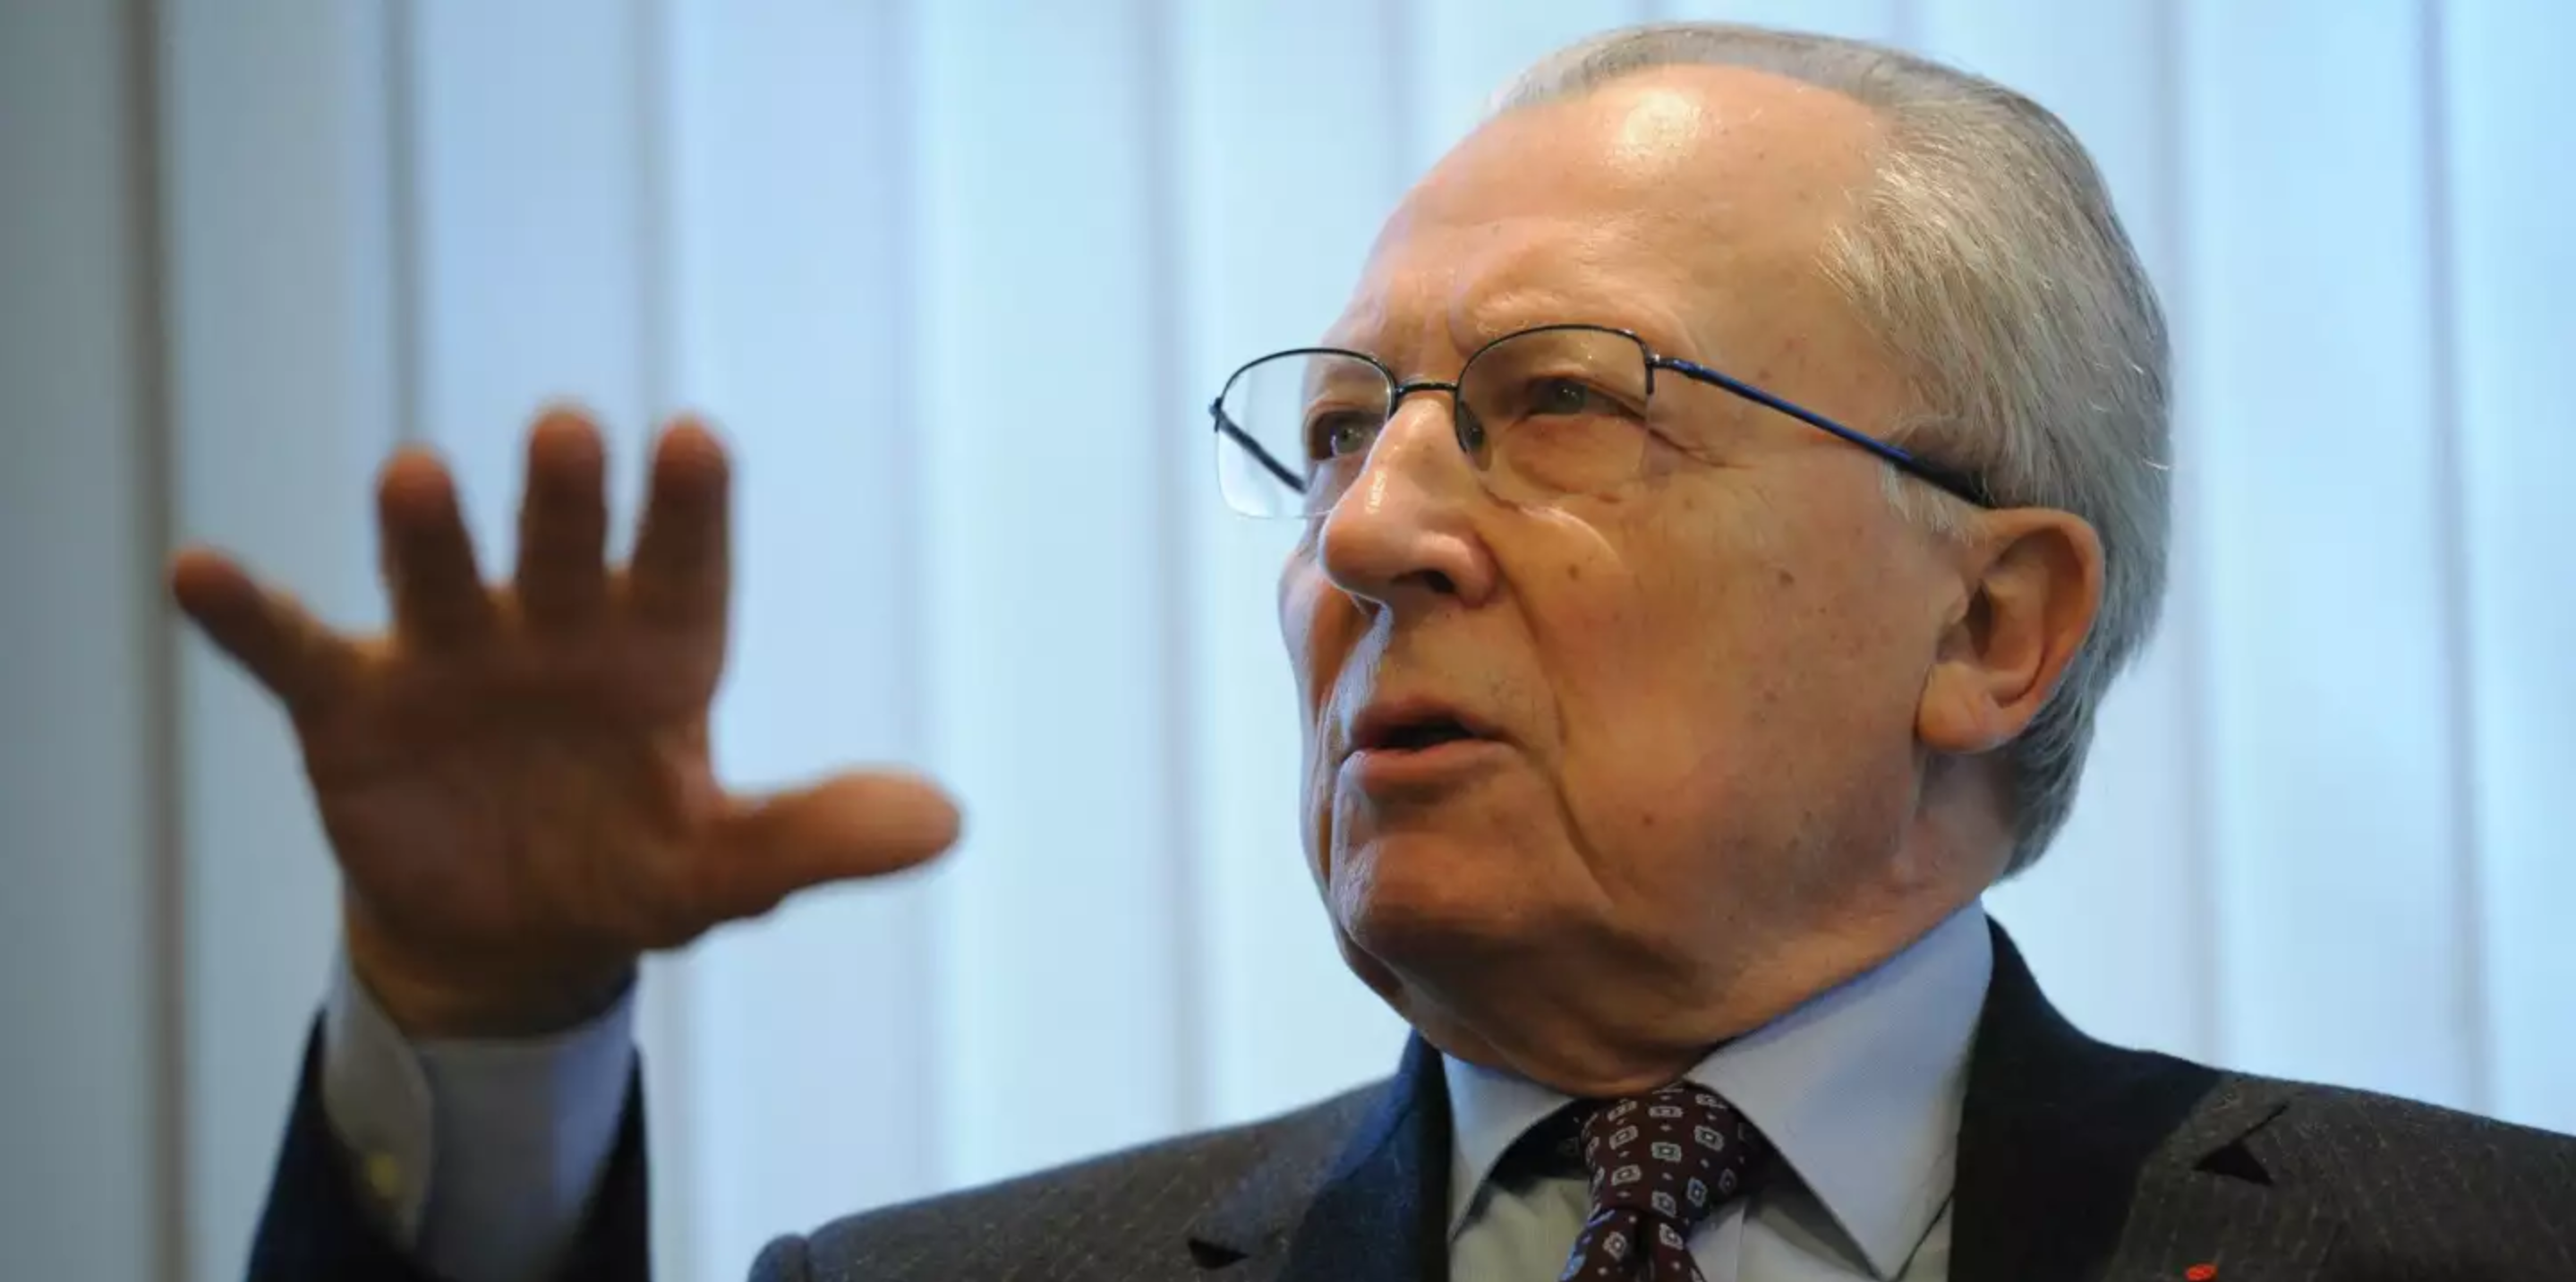 Former European Commission President Jacques Delors